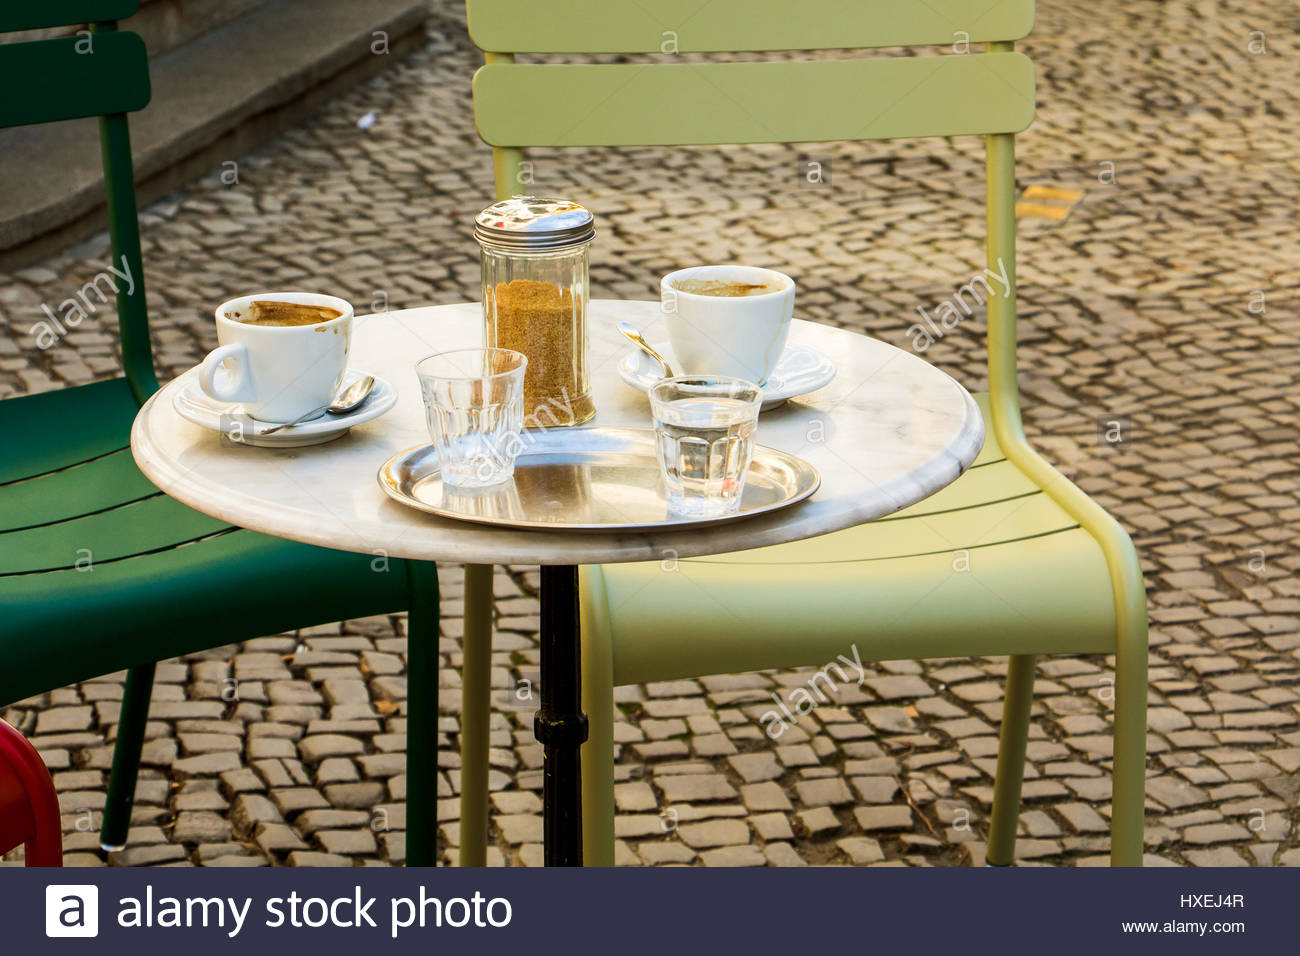 Cafe coffee shop table in berlin coffeehouse with two empty coffee cups, sugar and two glass water - Stock Image